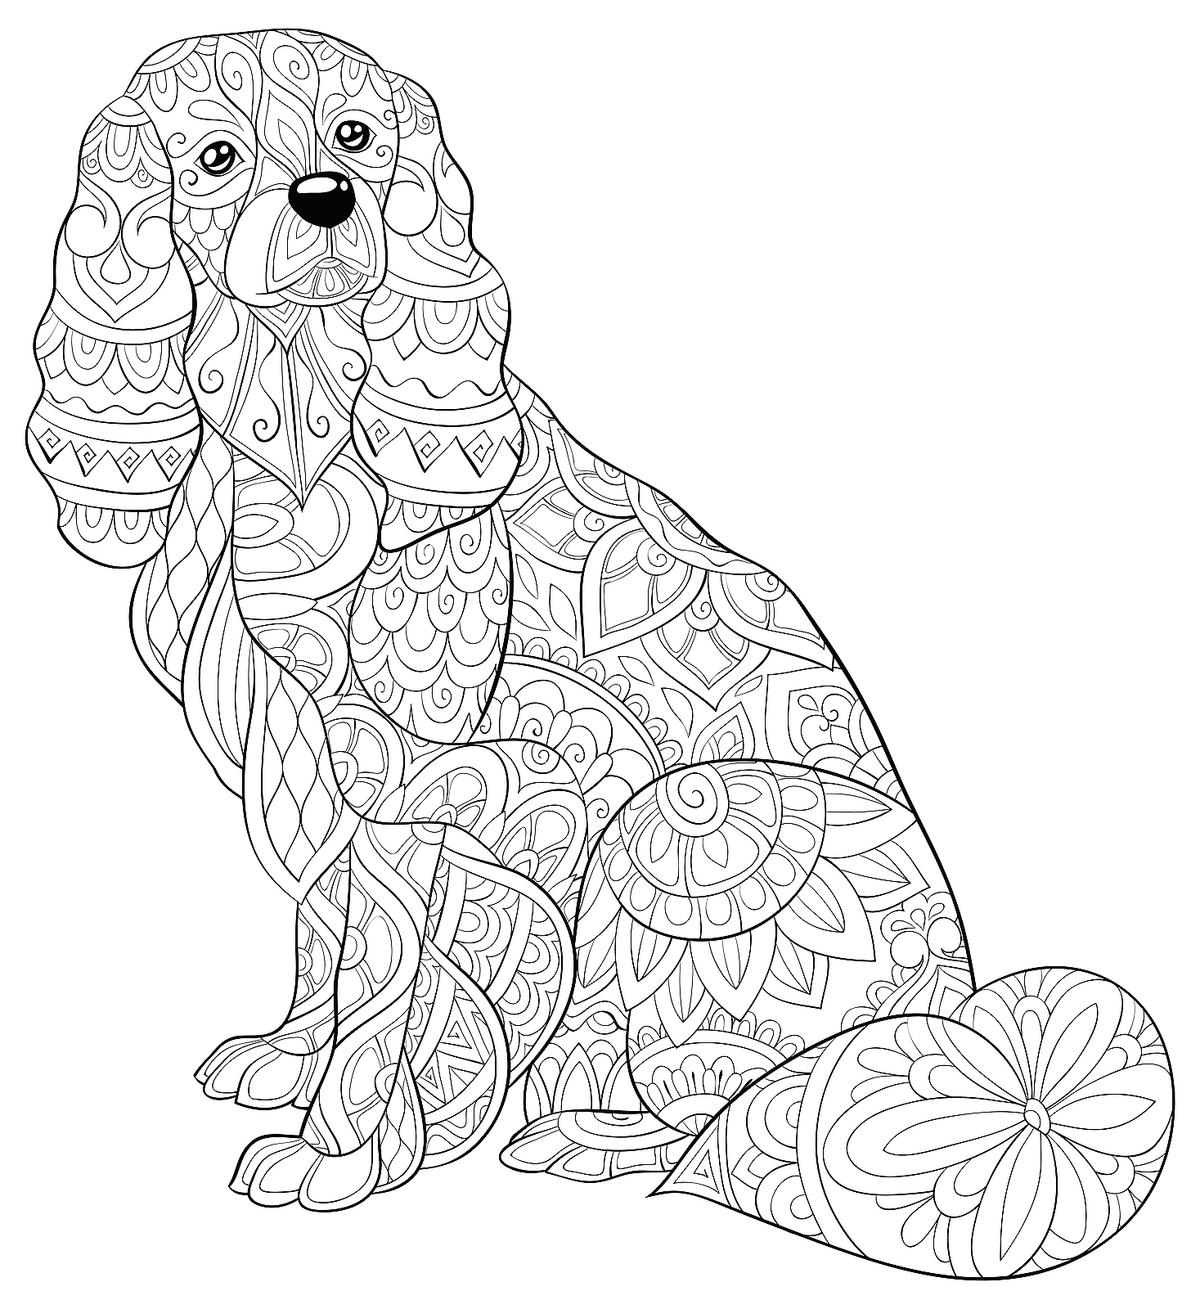 dog colouring in realistic dog coloring pages colouring dog in